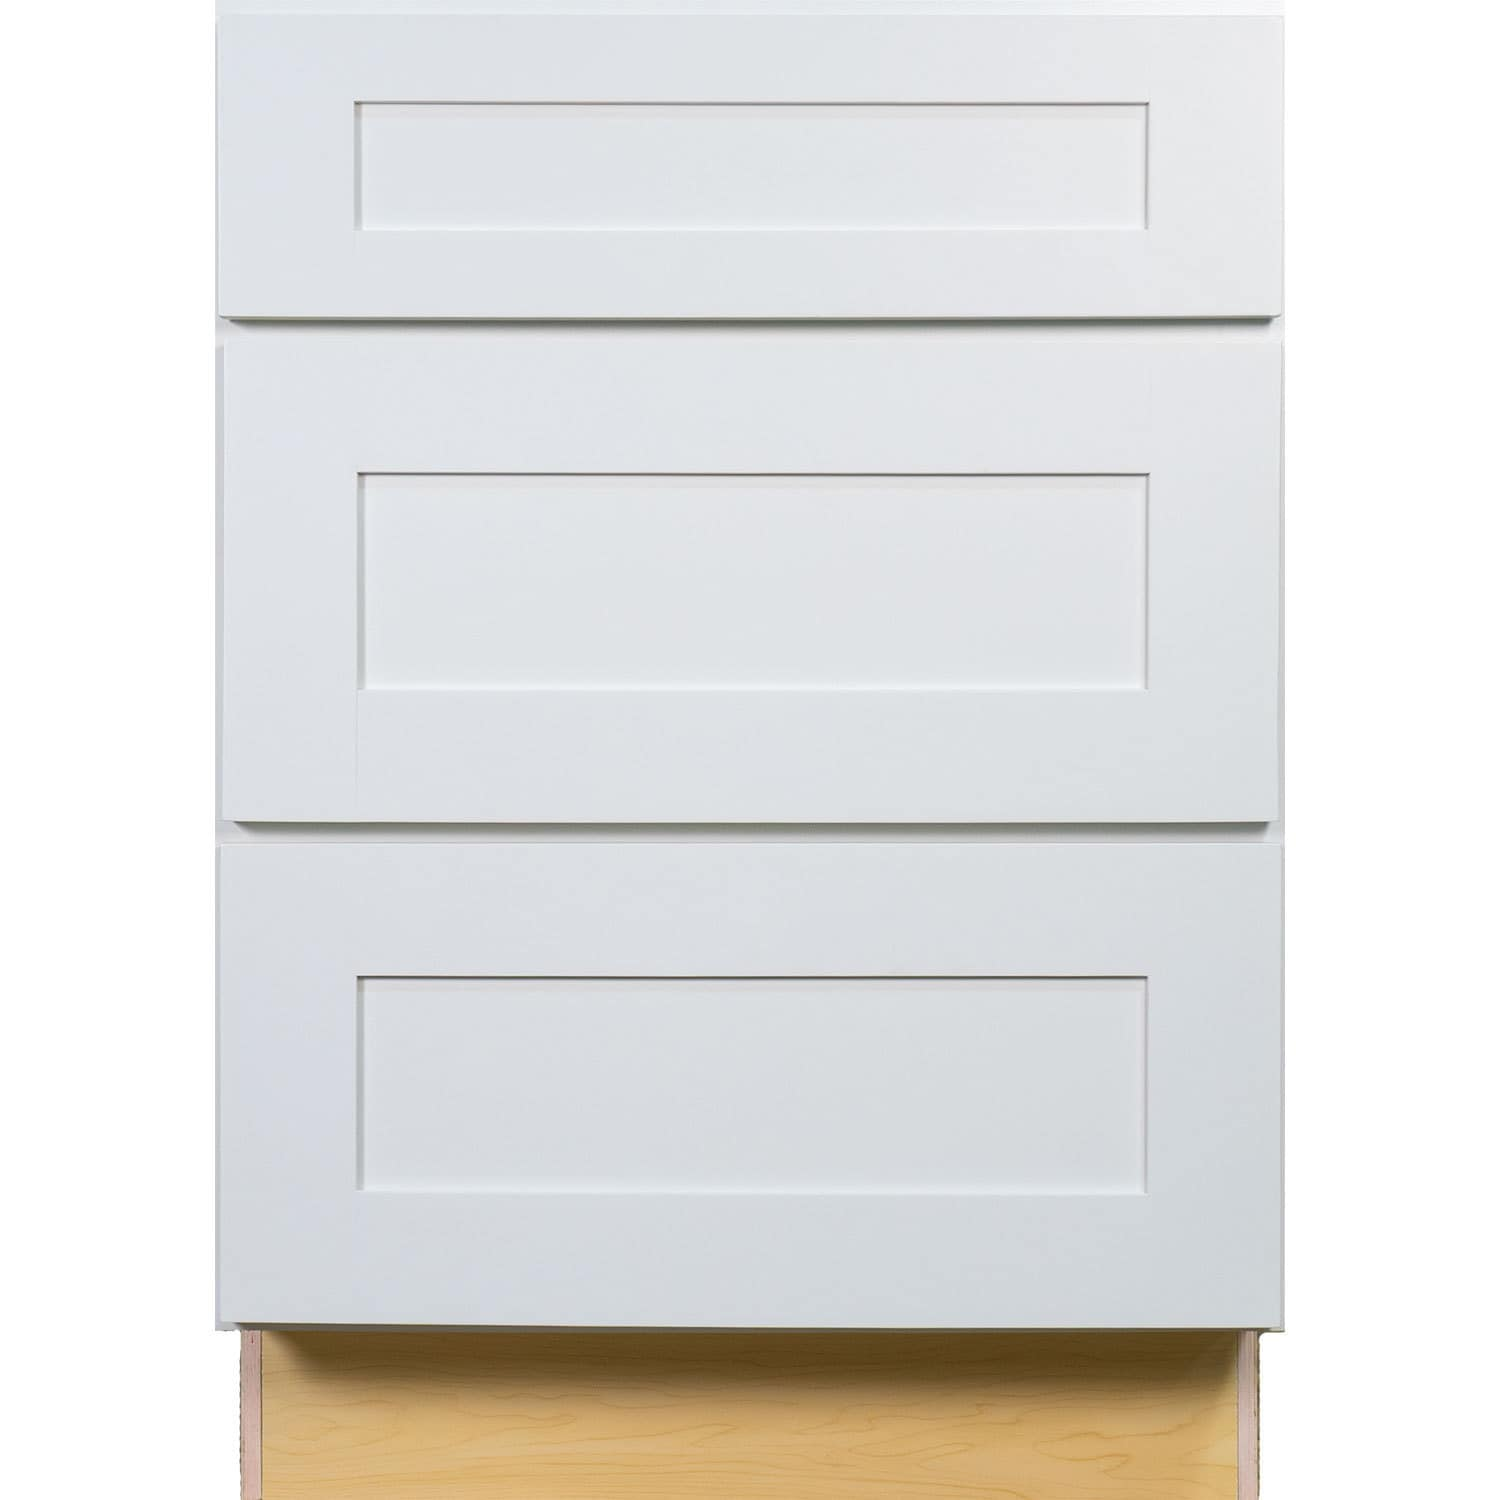 Everyday Cabinets 36 Inch White Shaker 3 Drawer Base Kitchen Cabinet Free Shipping Today 12315230